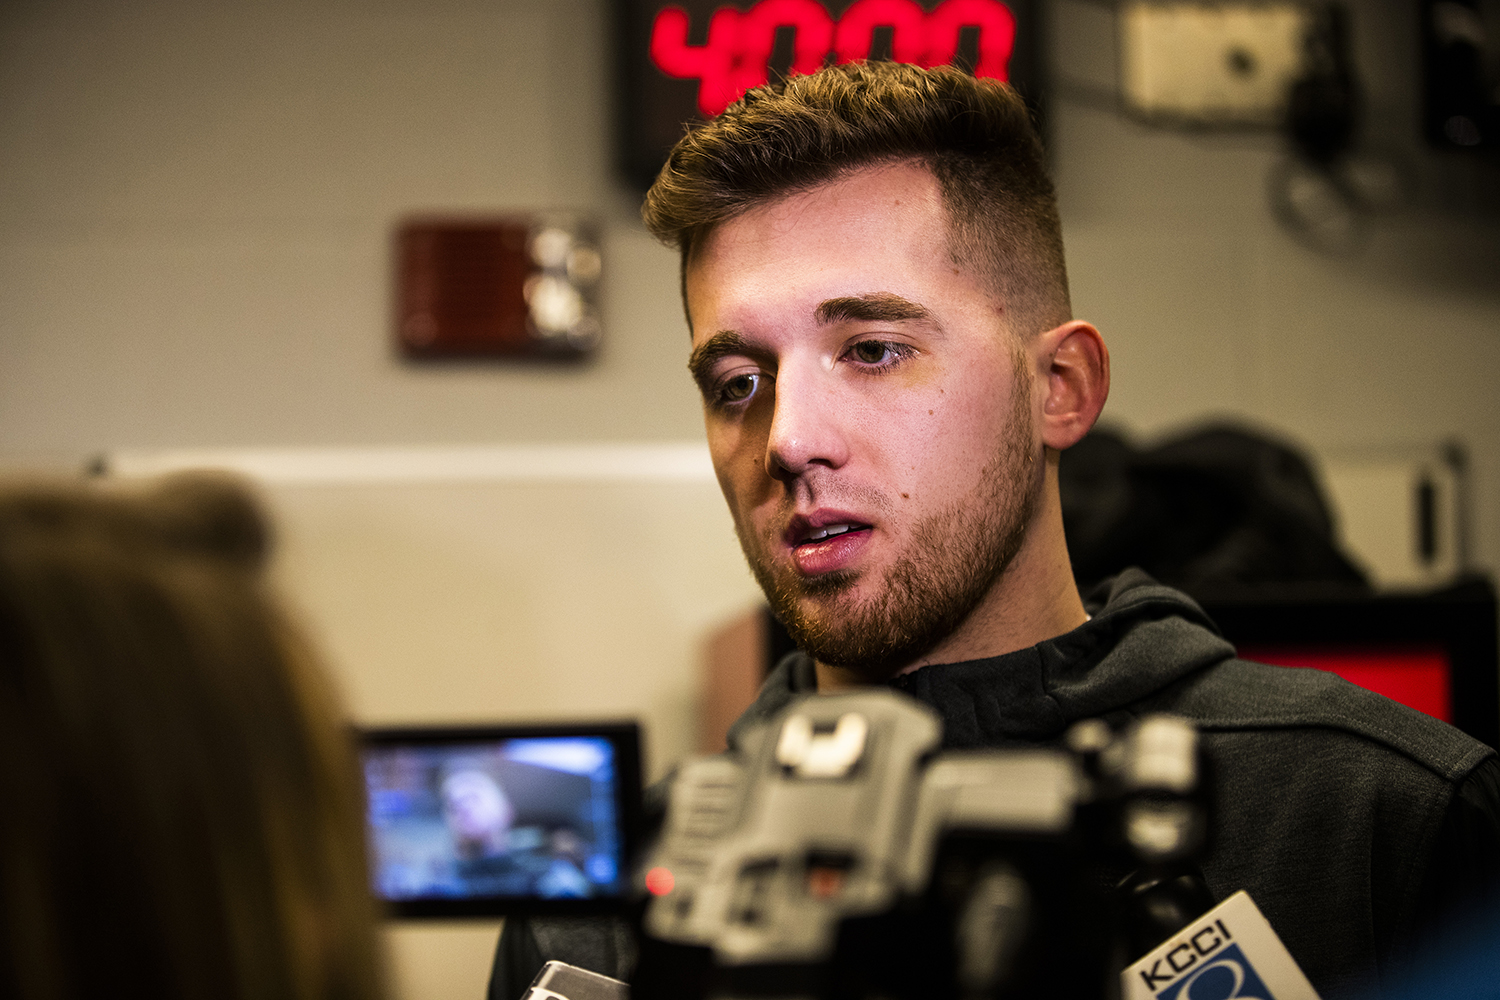 Iowa guard Jordan Bohannon speaks to the press during the Iowa press conference at Nationwide Arena in Columbus, Ohio on Thursday, March 21, 2019. The Hawkeyes will compete against the Cincinnati Bearcats tomorrow in the NCAA Tournament.